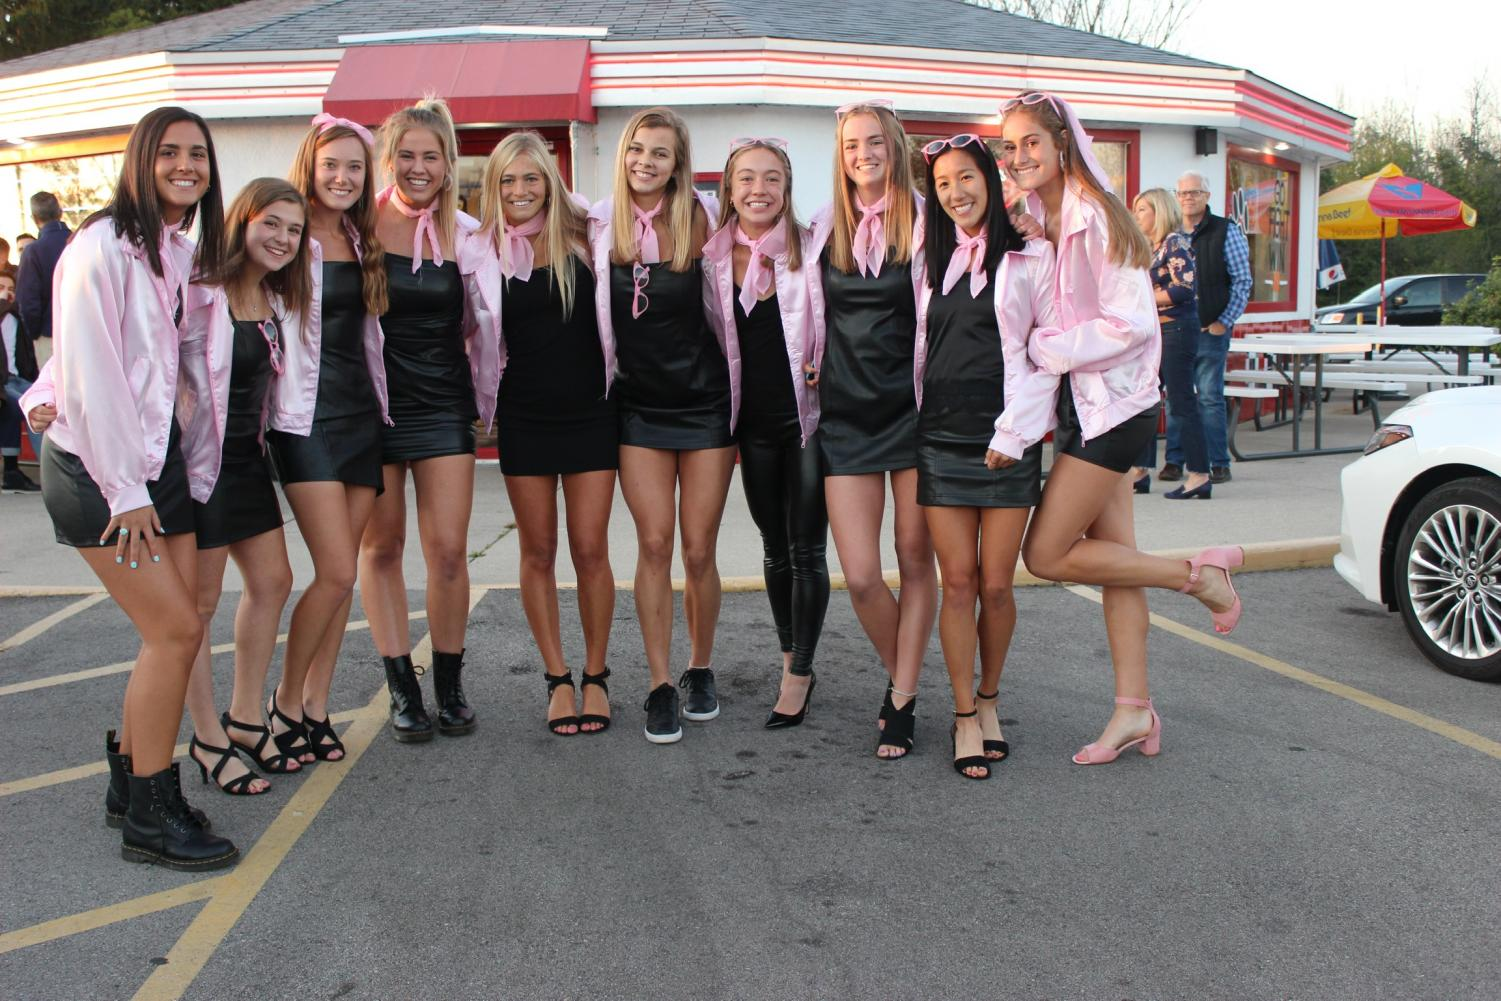 Mia Patel, Anna Gilgur, Madison Heitz, Kitty Nelson, Annie Gebhardt, Grace Mueller, Ava Wojnowski, Megan Carley, Natalie Yang, and Lauren Fitzsimmons, seniors, pose in their Pink Ladies from Grease costume